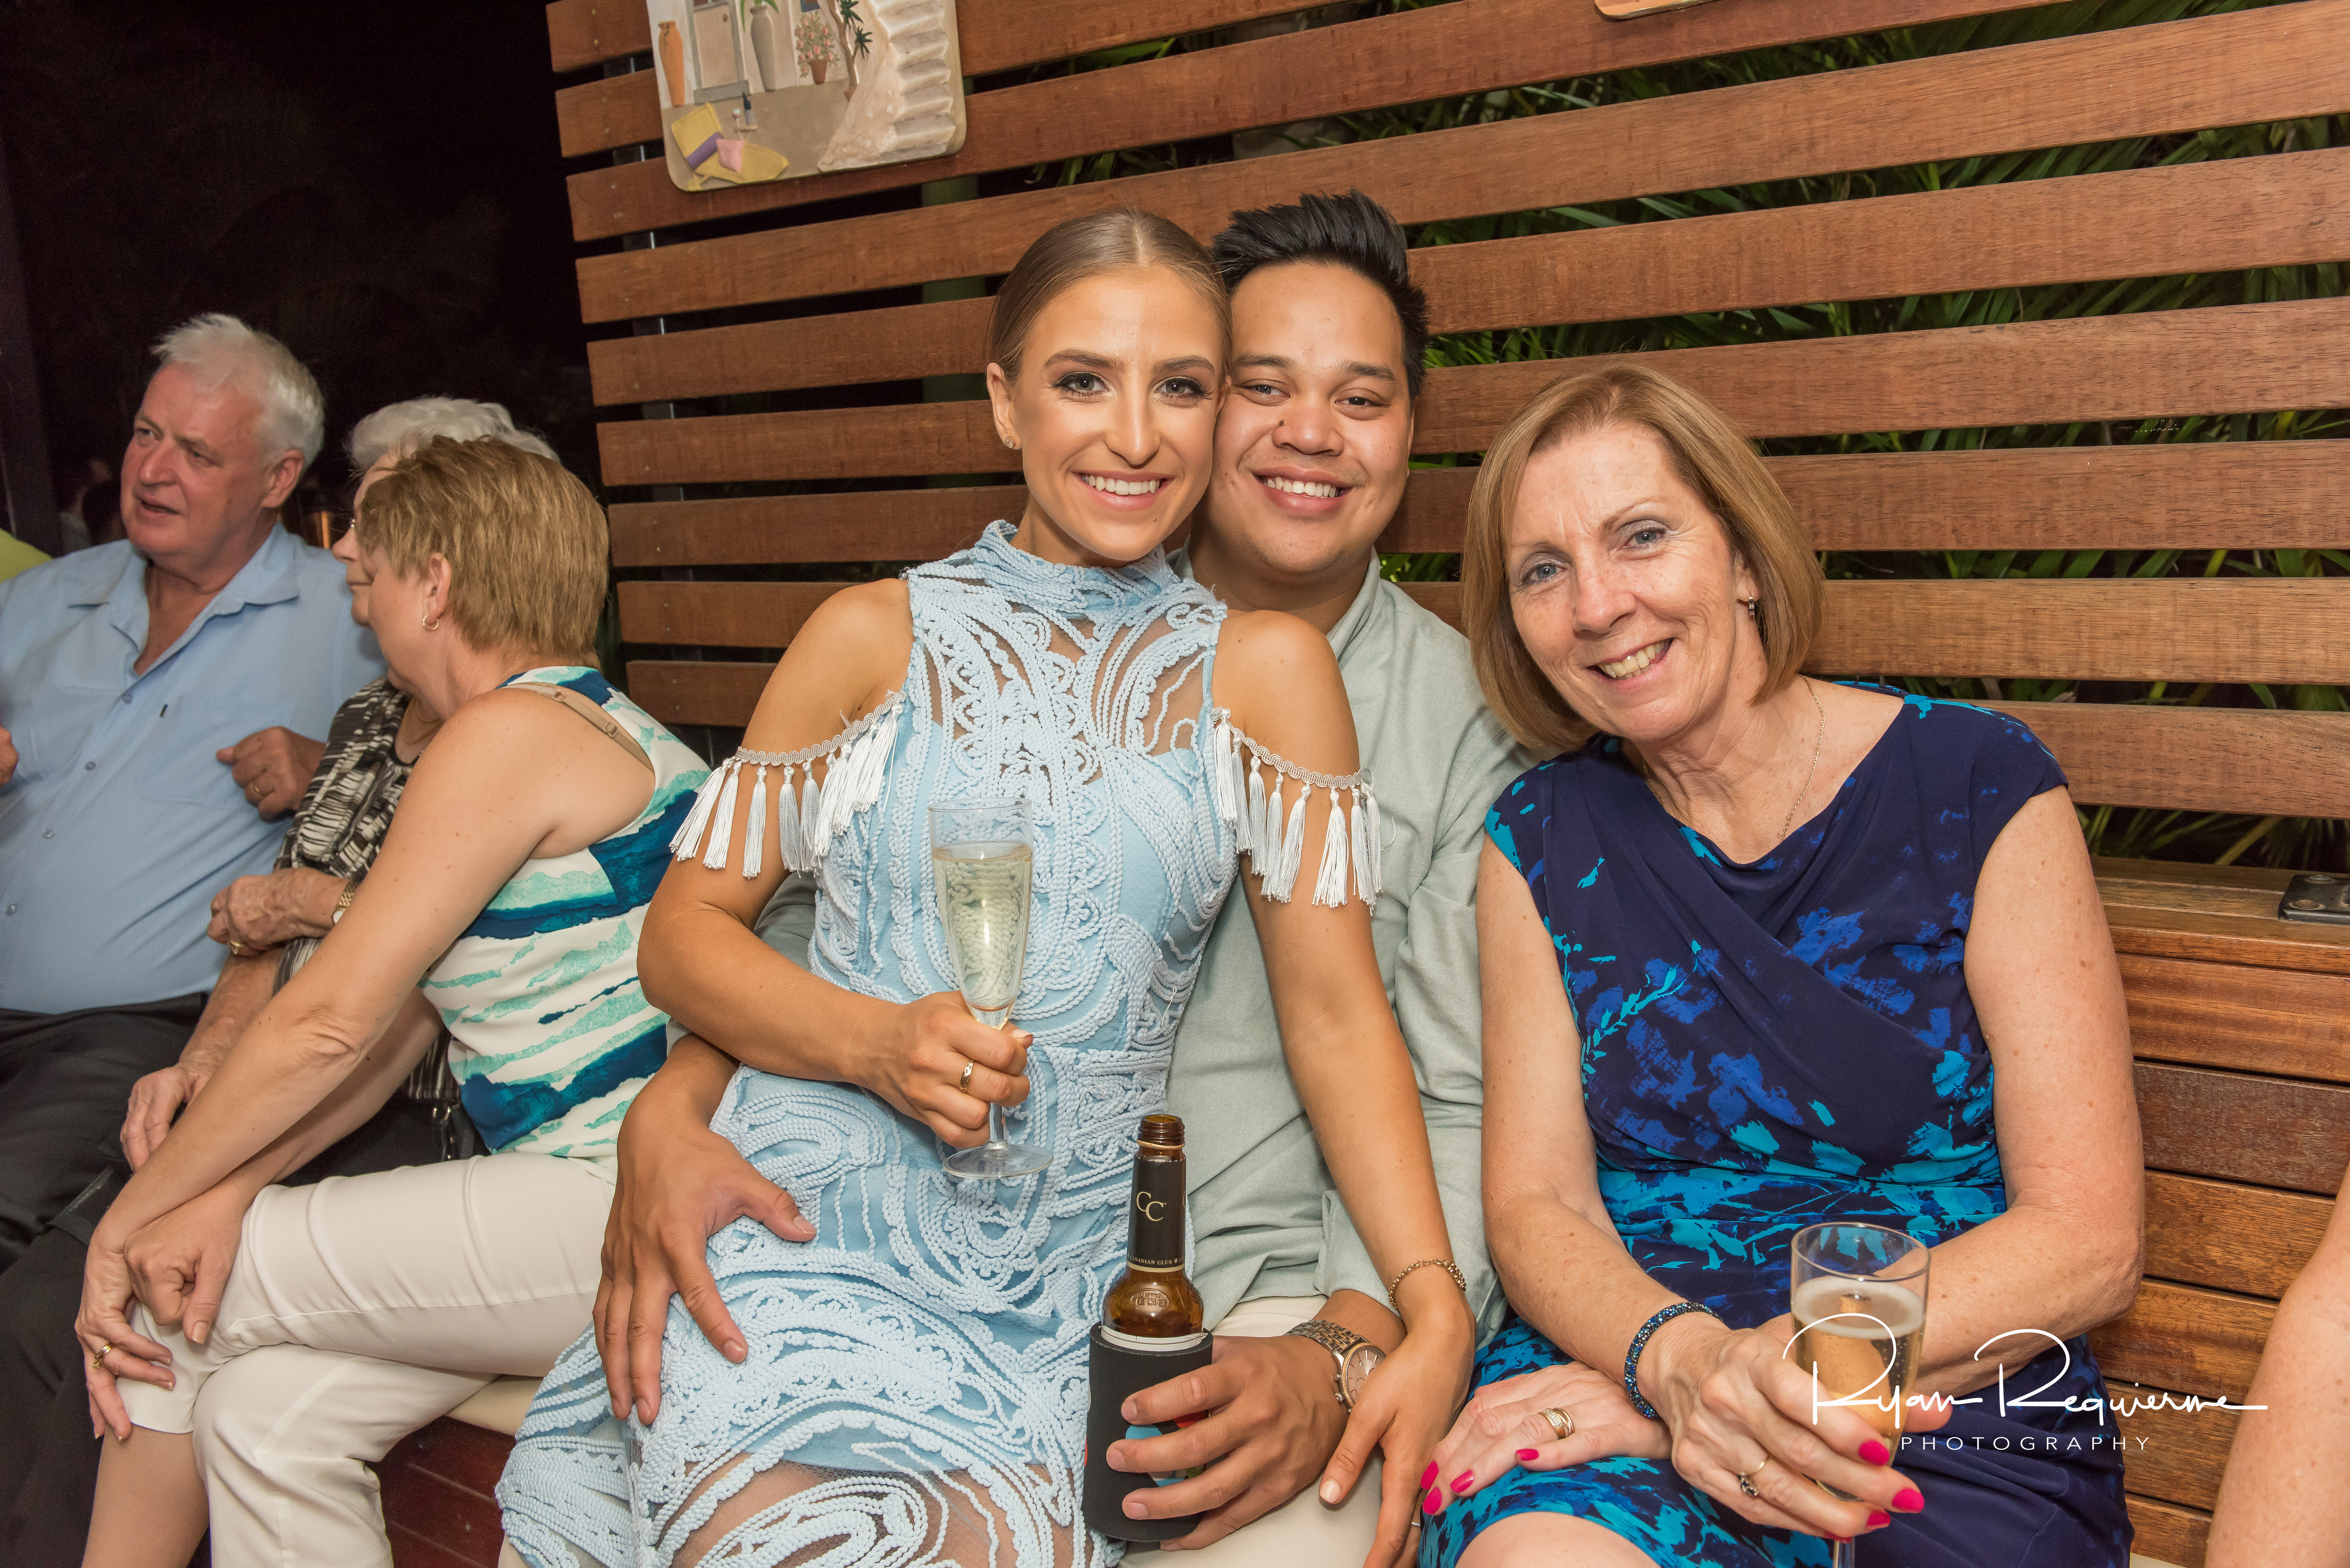 eventphotoau-263